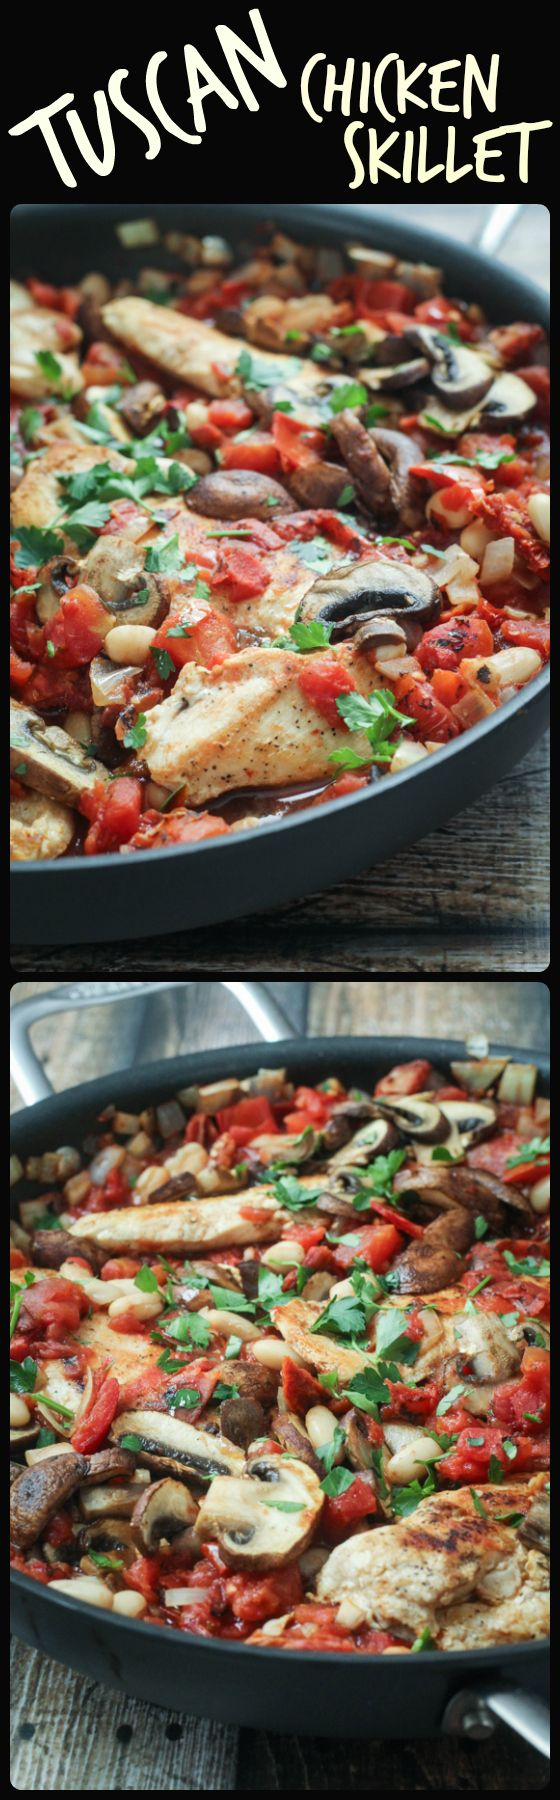 Tuscan Chicken Skillet. Yummy! The bean/tomato part tastes just like Biaggi's Oven-Roasted Tilapia (one of my faves). May make it with tilapia next time. Would be great served with asparagus too!